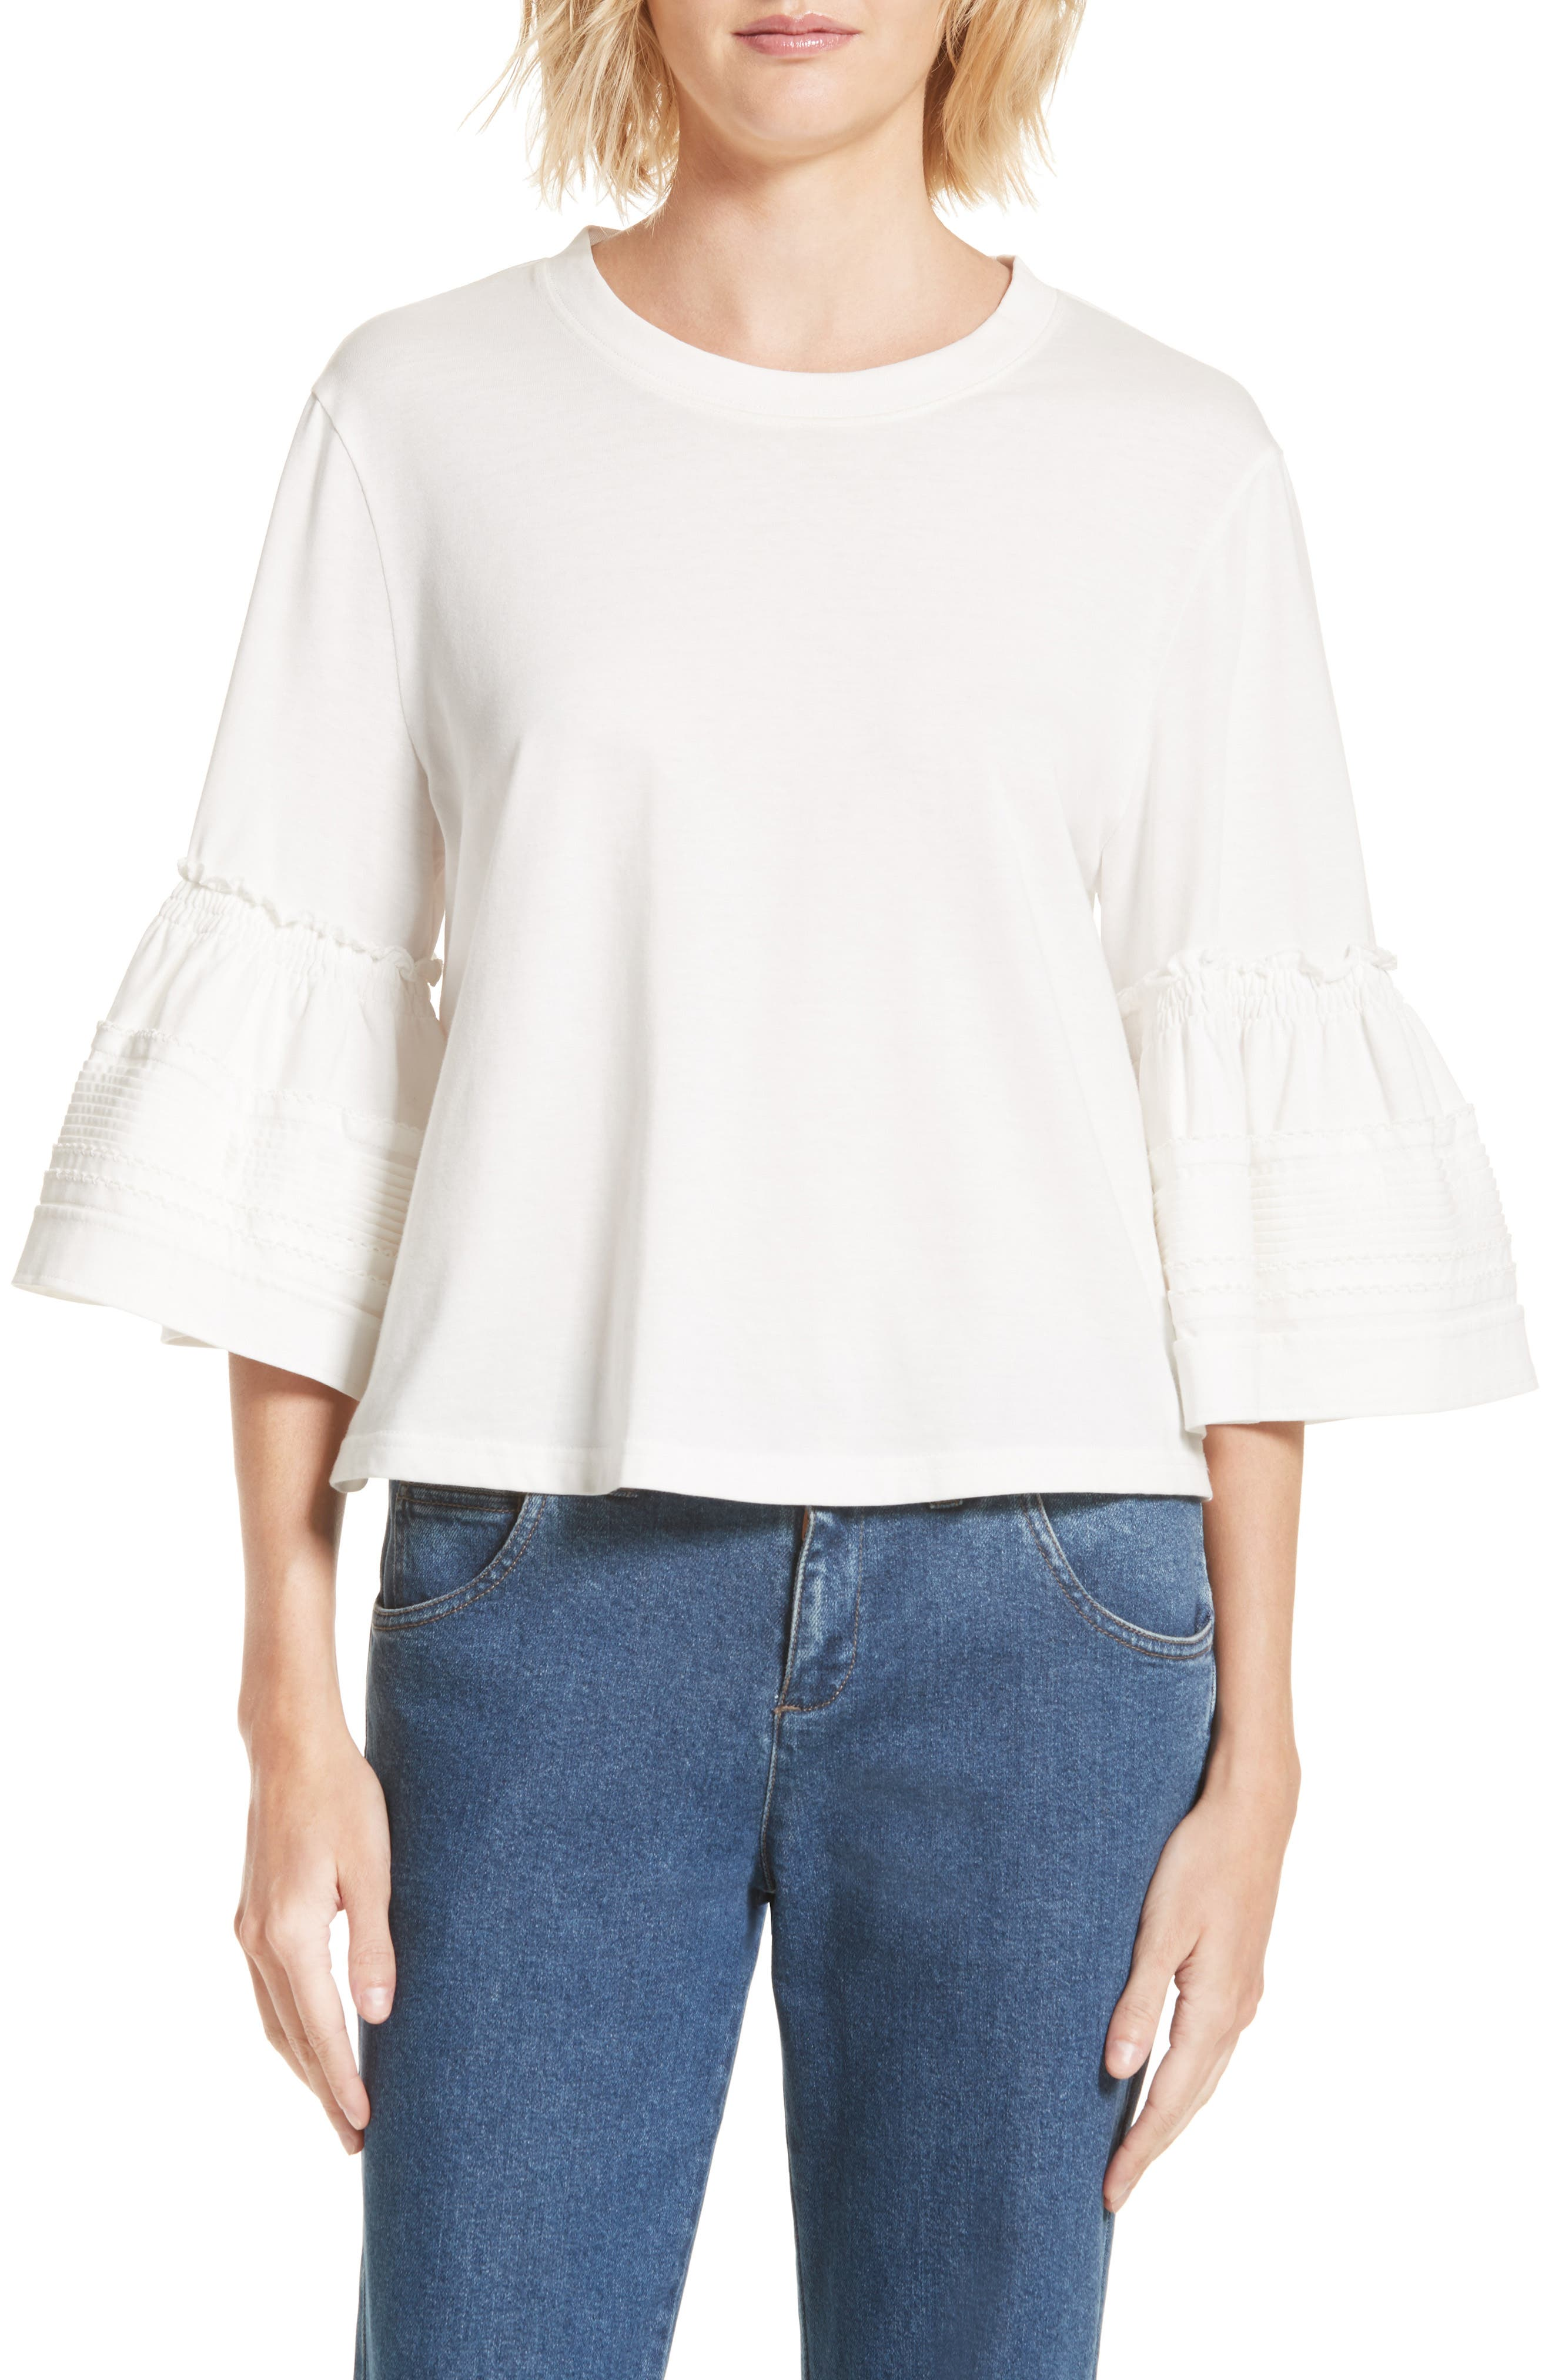 Alternate Image 1 Selected - See by Chloé Bell Sleeve Top